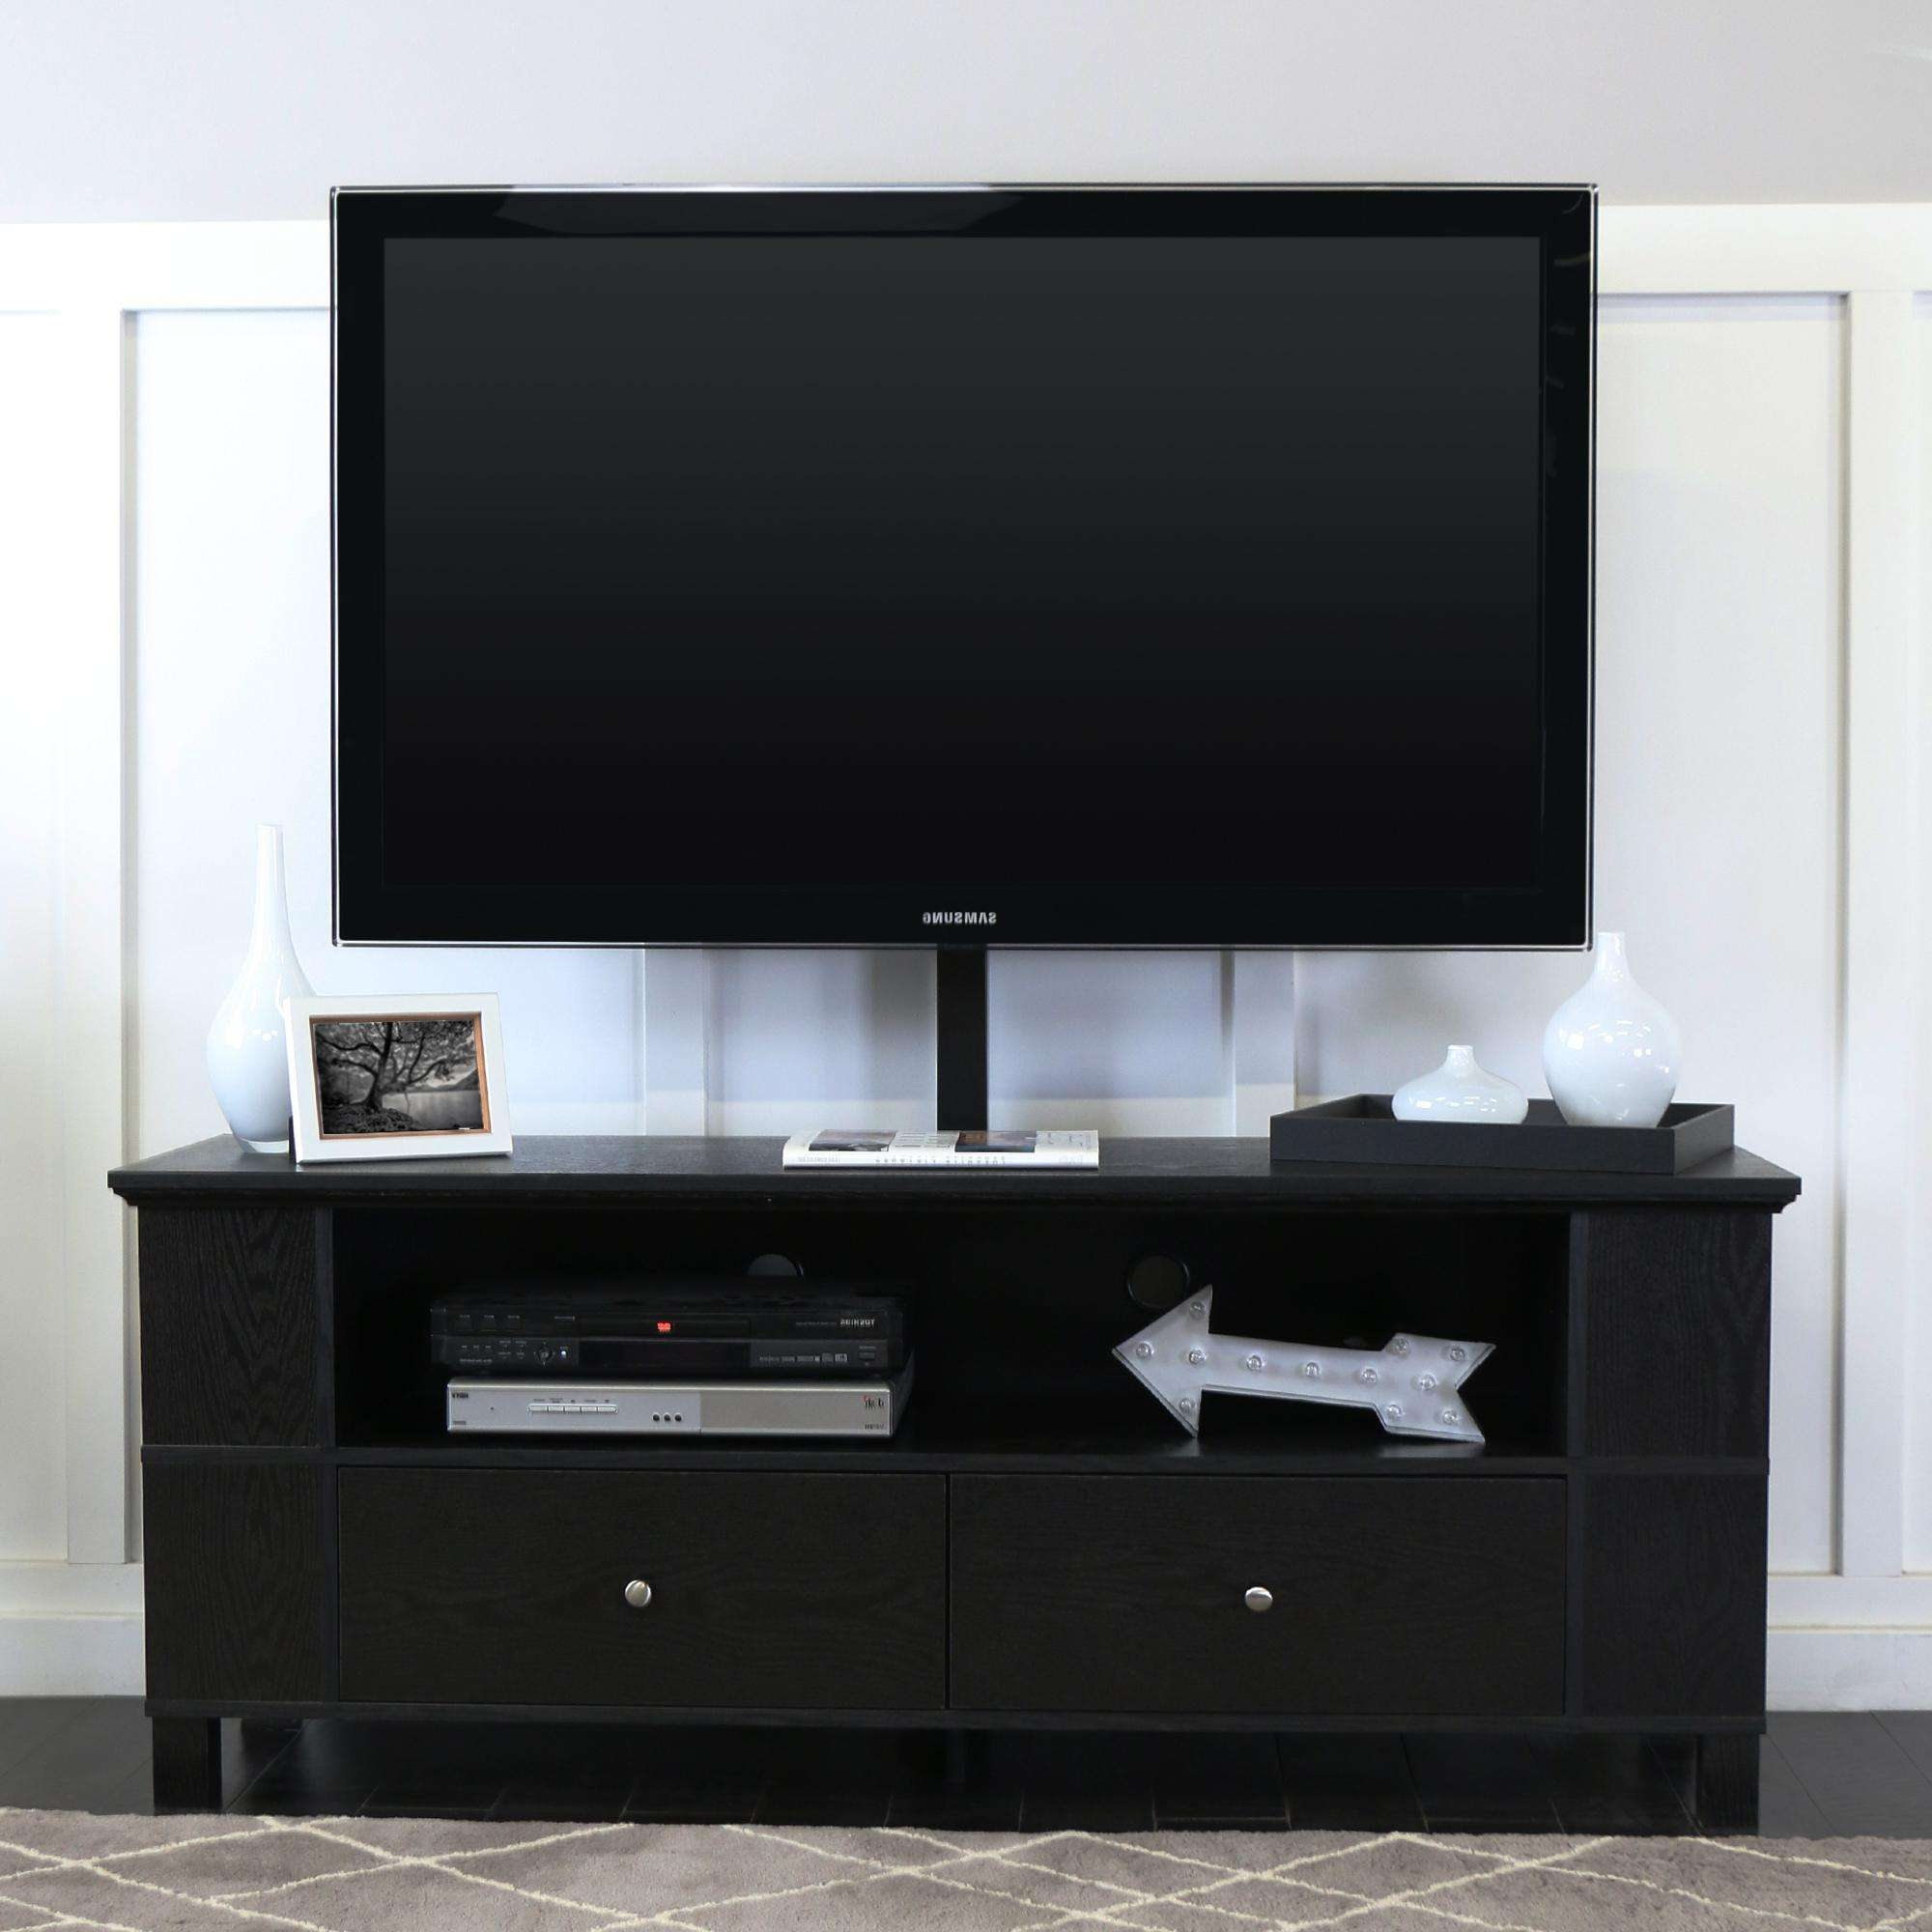 Furniture: Awesome Cymax Tv Stands With Cool Concepts Design With Corner 60 Inch Tv Stands (View 6 of 15)